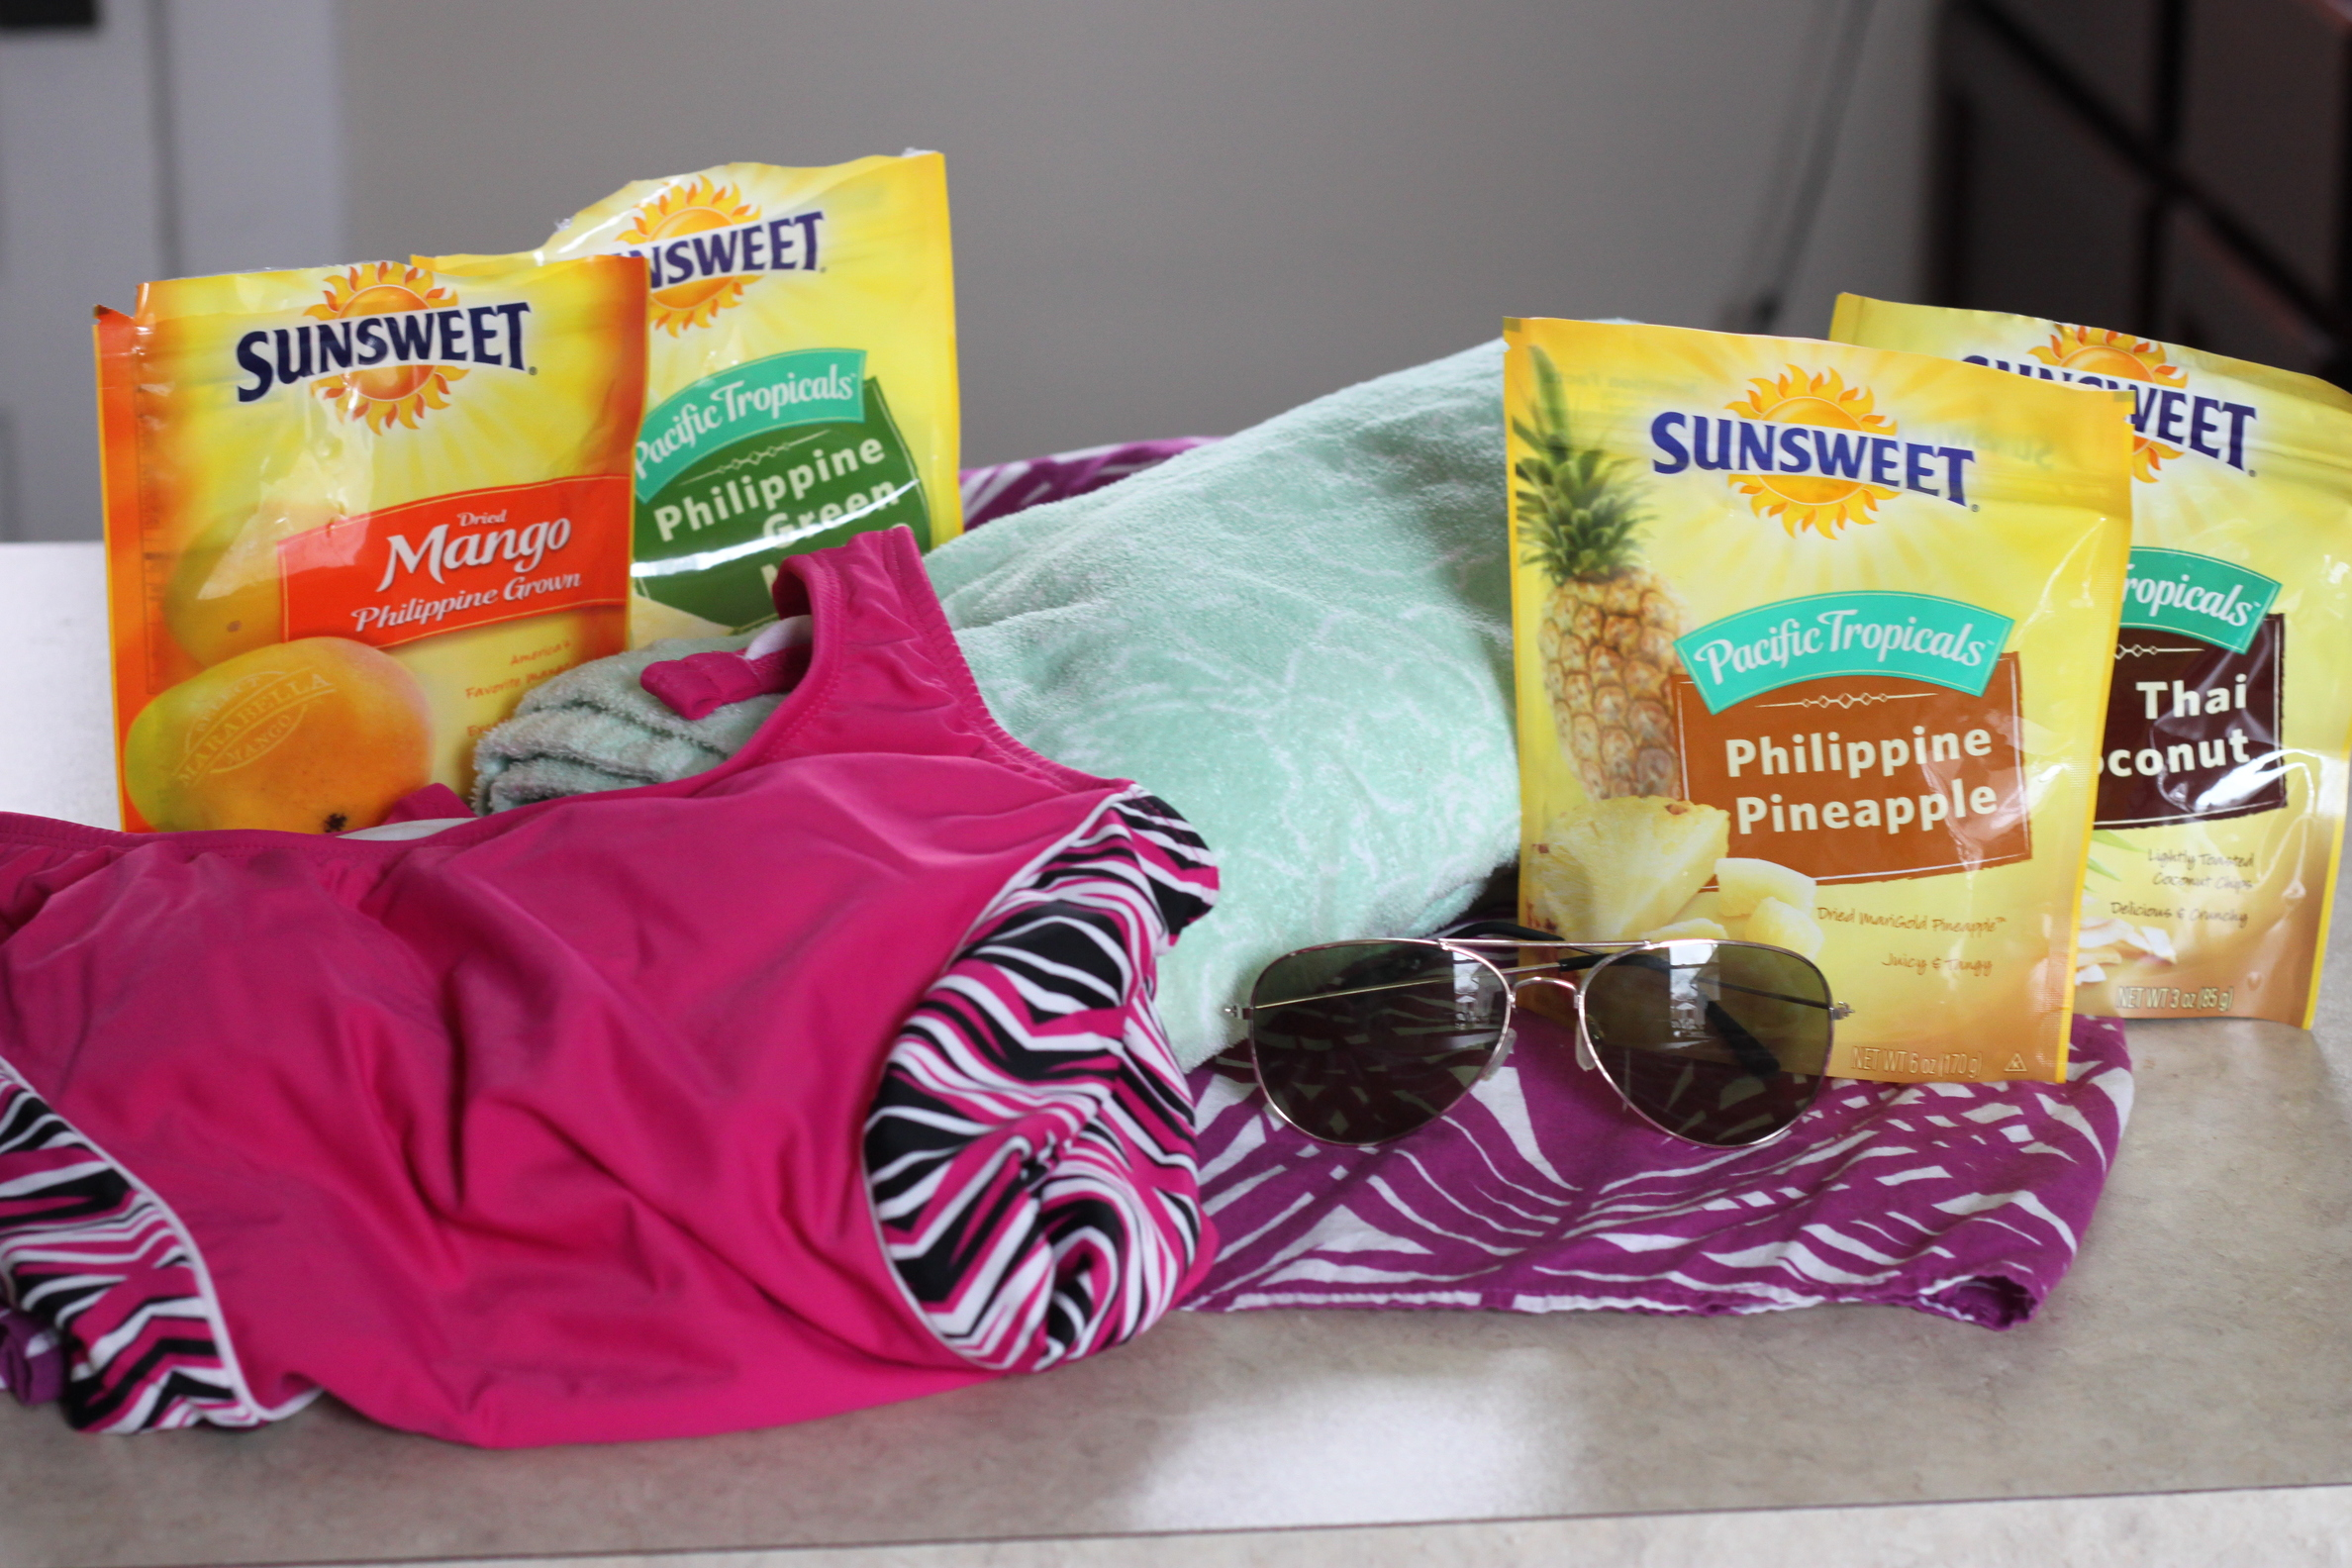 Sunsweet Has Recentlye Out With A New Flavor, Philippine Green Mango  These Are Tangy, Just Like You'd Expect From A Fruit That Is Picked Before  It's